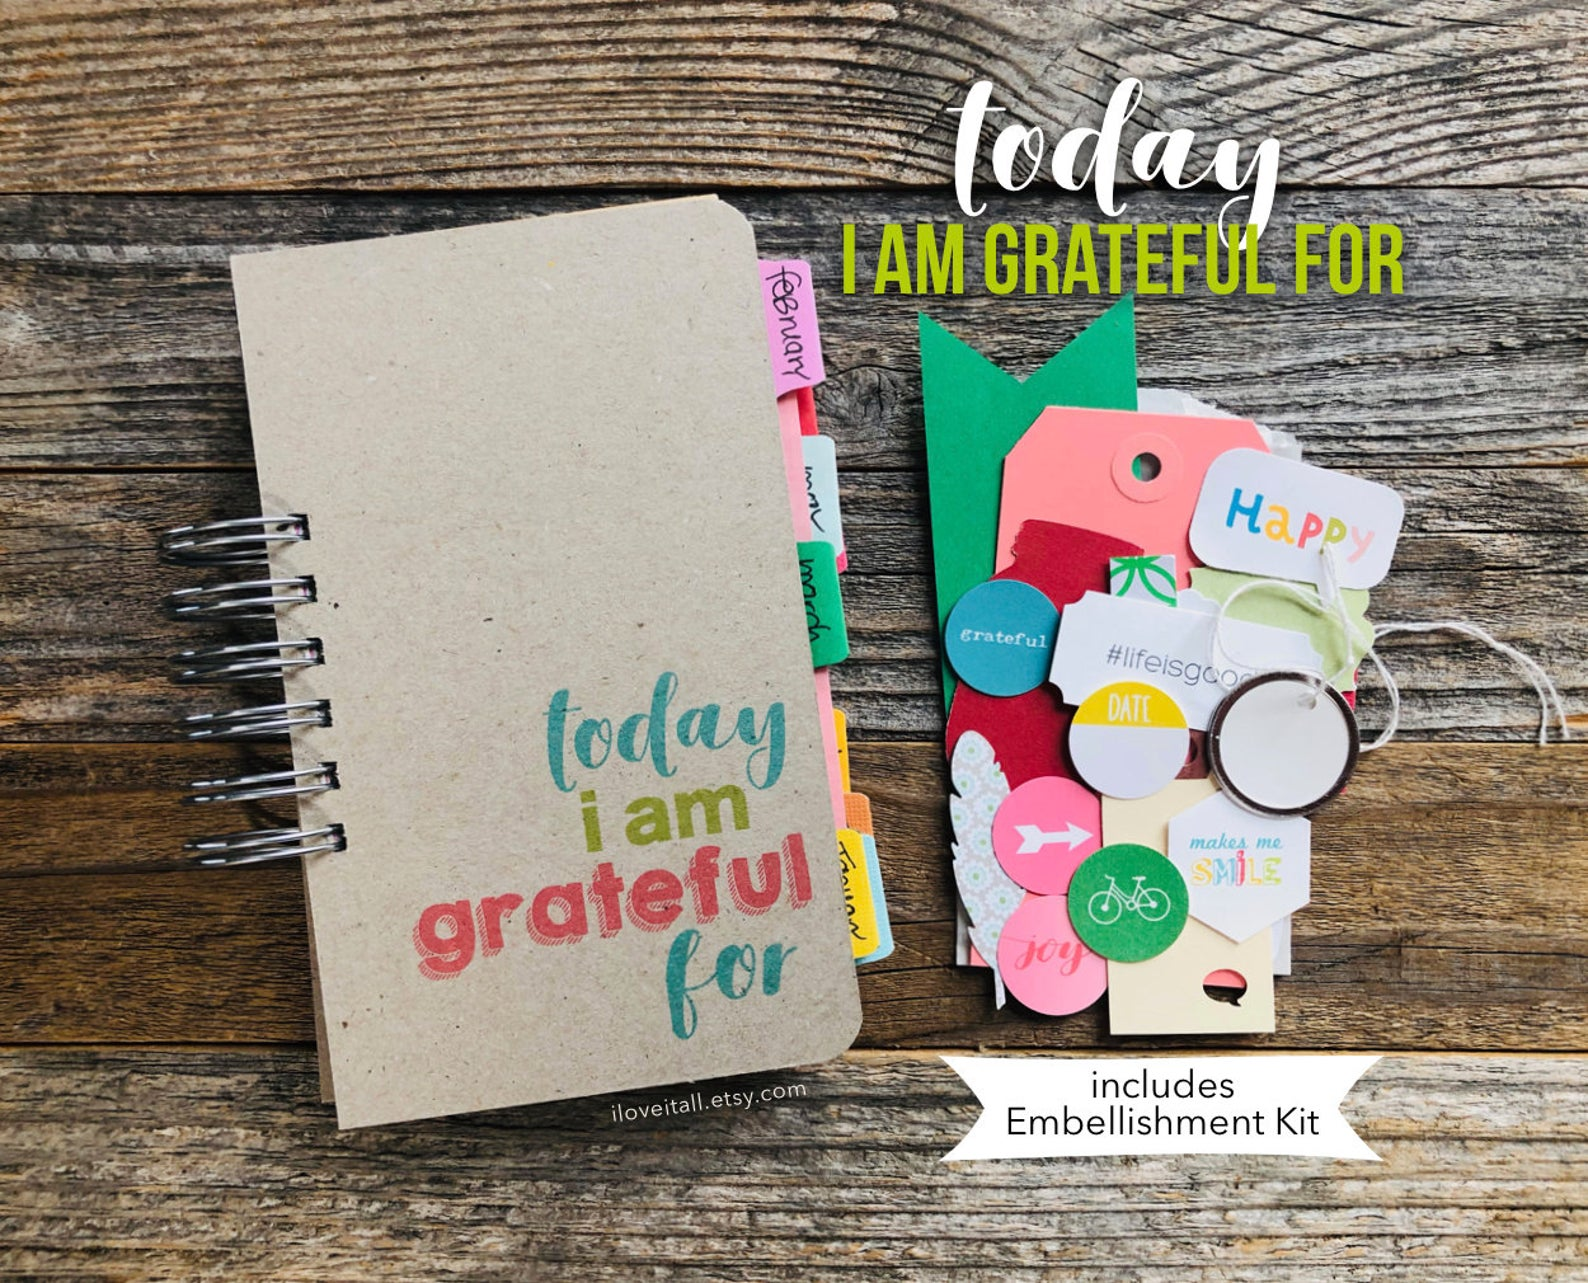 #Gratitude Journal #2020 #gratitude #journal #journaling #reflection journal #grateful #gratefulness #thankfulness journal #Things I Am Grateful For #Today I Am Grateful